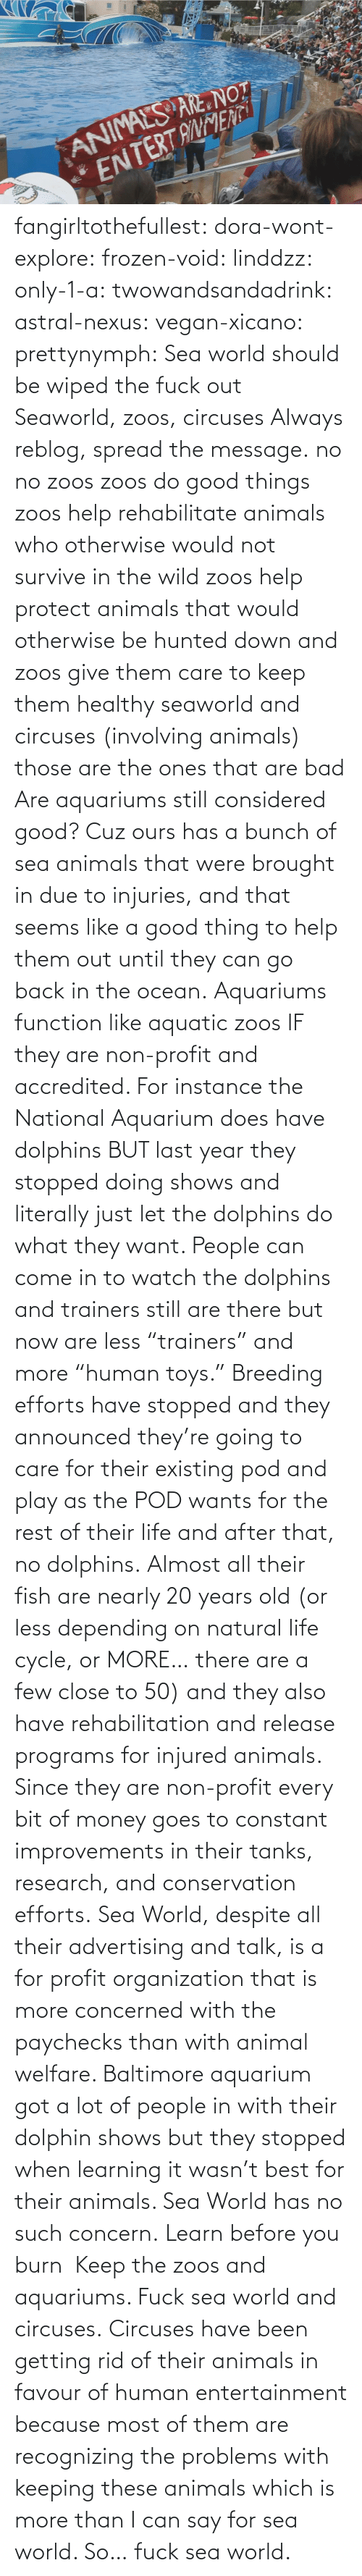 "Animals, Bad, and Frozen: fangirltothefullest:  dora-wont-explore:  frozen-void:  linddzz:  only-1-a:  twowandsandadrink:  astral-nexus:  vegan-xicano:  prettynymph:  Sea world should be wiped the fuck out  Seaworld, zoos, circuses  Always reblog, spread the message.  no no zoos zoos do good things zoos help rehabilitate animals who otherwise would not survive in the wild zoos help protect animals that would otherwise be hunted down and zoos give them care to keep them healthy seaworld and circuses (involving animals) those are the ones that are bad  Are aquariums still considered good? Cuz ours has a bunch of sea animals that were brought in due to injuries, and that seems like a good thing to help them out until they can go back in the ocean.  Aquariums function like aquatic zoos IF they are non-profit and accredited. For instance the National Aquarium does have dolphins BUT last year they stopped doing shows and literally just let the dolphins do what they want. People can come in to watch the dolphins and trainers still are there but now are less ""trainers"" and more ""human toys."" Breeding efforts have stopped and they announced they're going to care for their existing pod and play as the POD wants for the rest of their life and after that, no dolphins. Almost all their fish are nearly 20 years old (or less depending on natural life cycle, or MORE… there are a few close to 50) and they also have rehabilitation and release programs for injured animals. Since they are non-profit every bit of money goes to constant improvements in their tanks, research, and conservation efforts. Sea World, despite all their advertising and talk, is a for profit organization that is more concerned with the paychecks than with animal welfare. Baltimore aquarium got a lot of people in with their dolphin shows but they stopped when learning it wasn't best for their animals. Sea World has no such concern.  Learn before you burn   Keep the zoos and aquariums. Fuck sea world and circuses.  Circuses have been getting rid of  their animals in favour of human entertainment because most of them are recognizing the problems with keeping these animals which is more than I can say for sea world. So… fuck sea world."